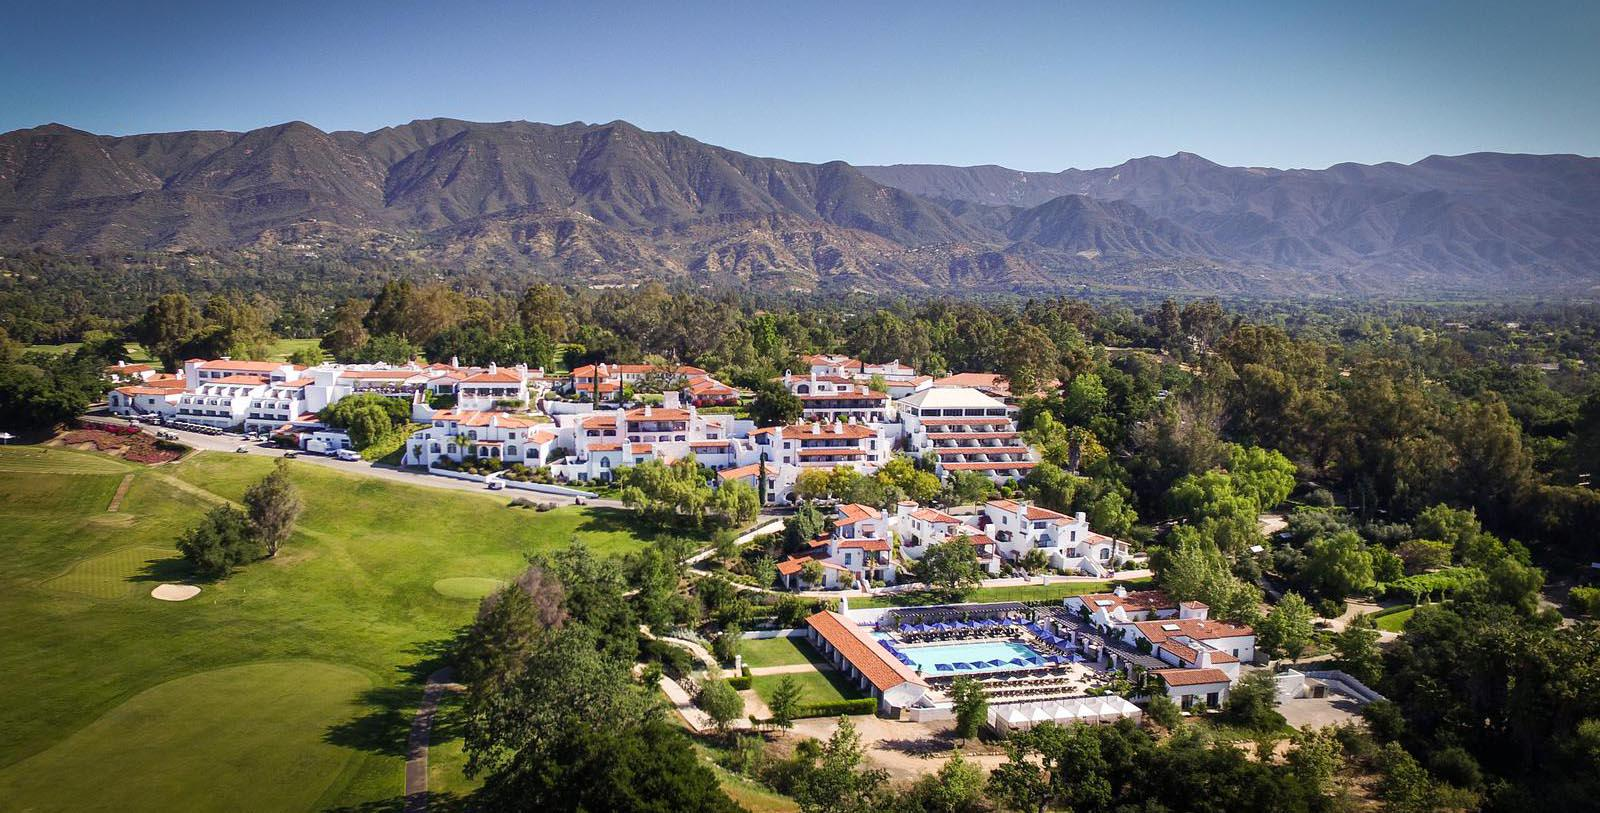 Image of Aerial View of Exterior, Ojai Valley Inn, Ojai, California, 1923, Member of Historic Hotels of America, Special Offers, Discounted Rates, Families, Romantic Escape, Honeymoons, Anniversaries, Reunions